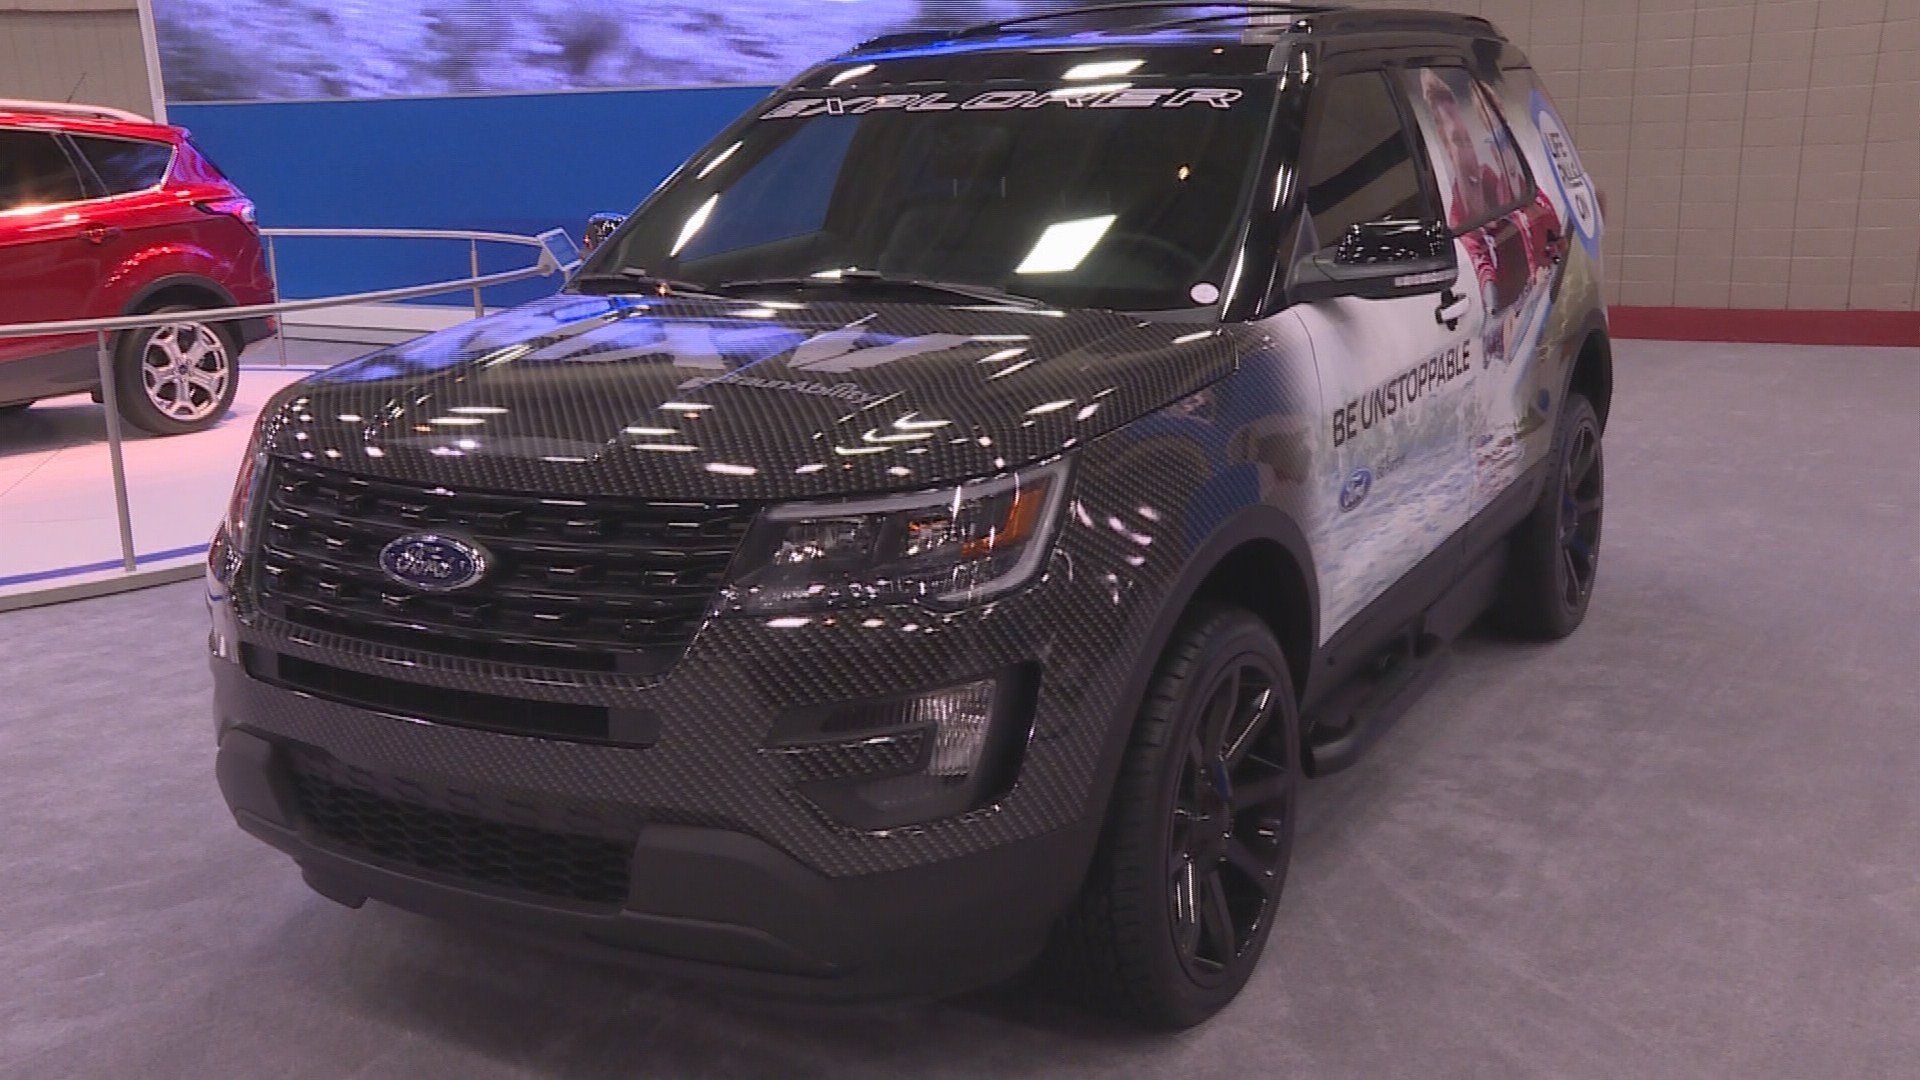 2016 Ford Explorer Limited >> Wheelchair-accessible SUV on display at Dallas Auto Show ...